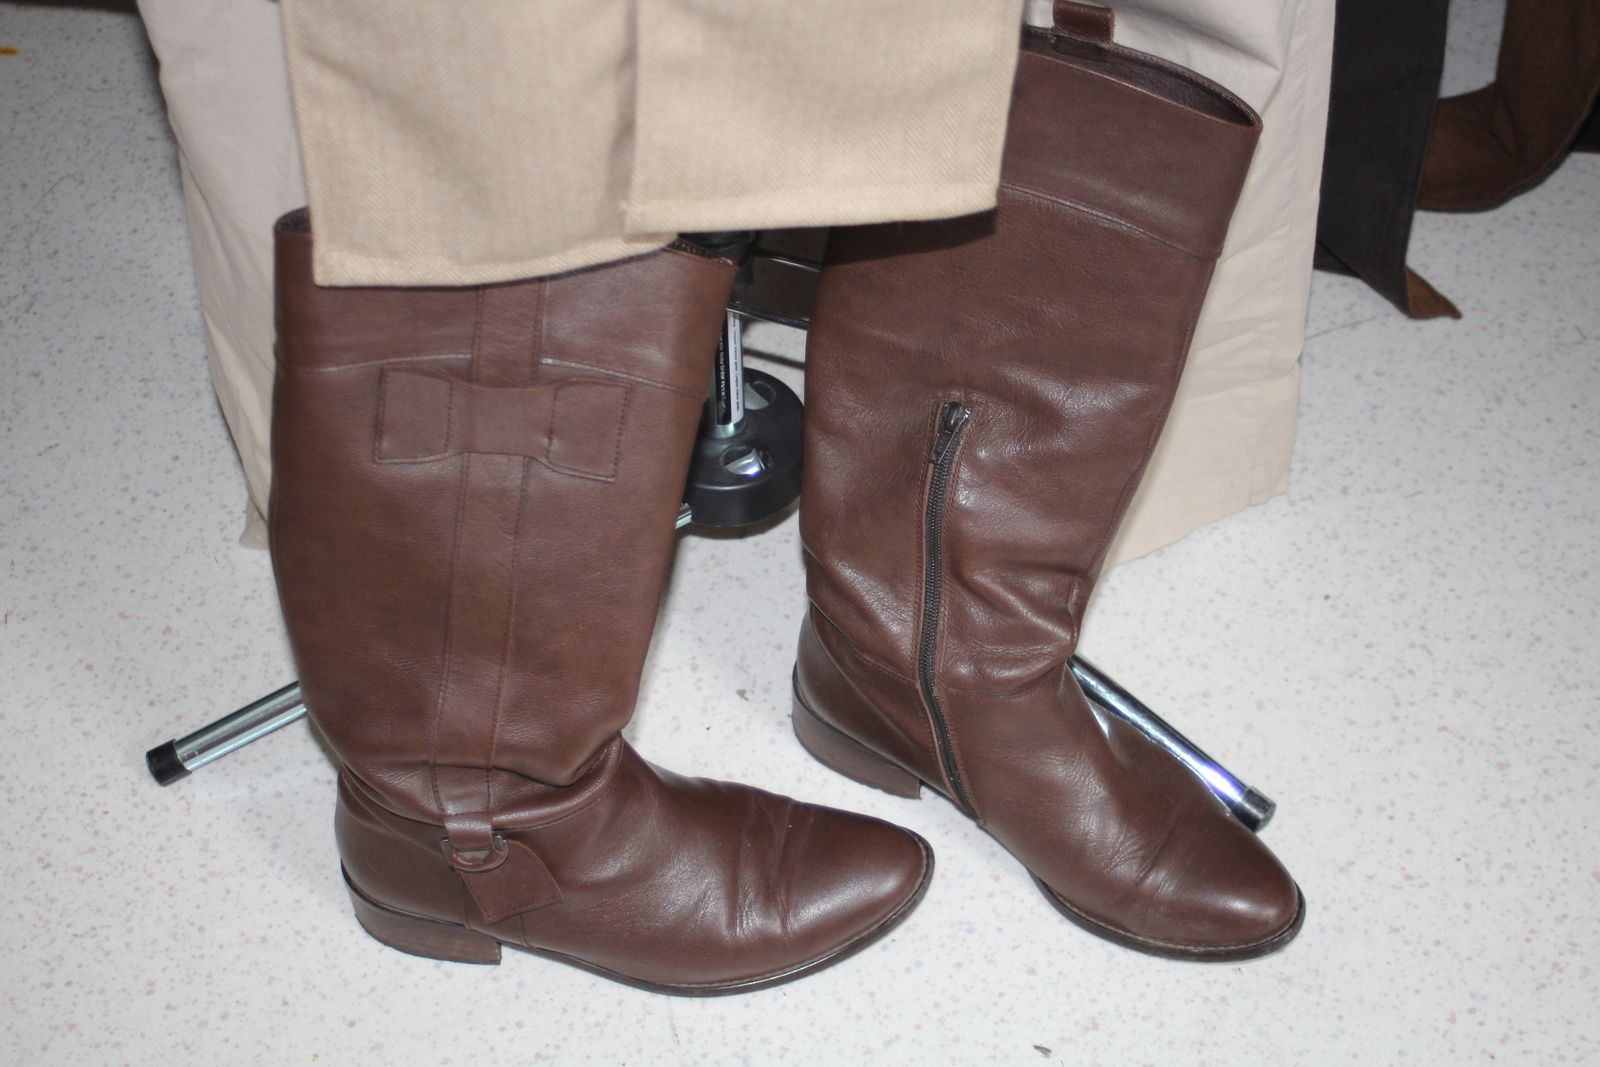 Mes bottes! / My boots!